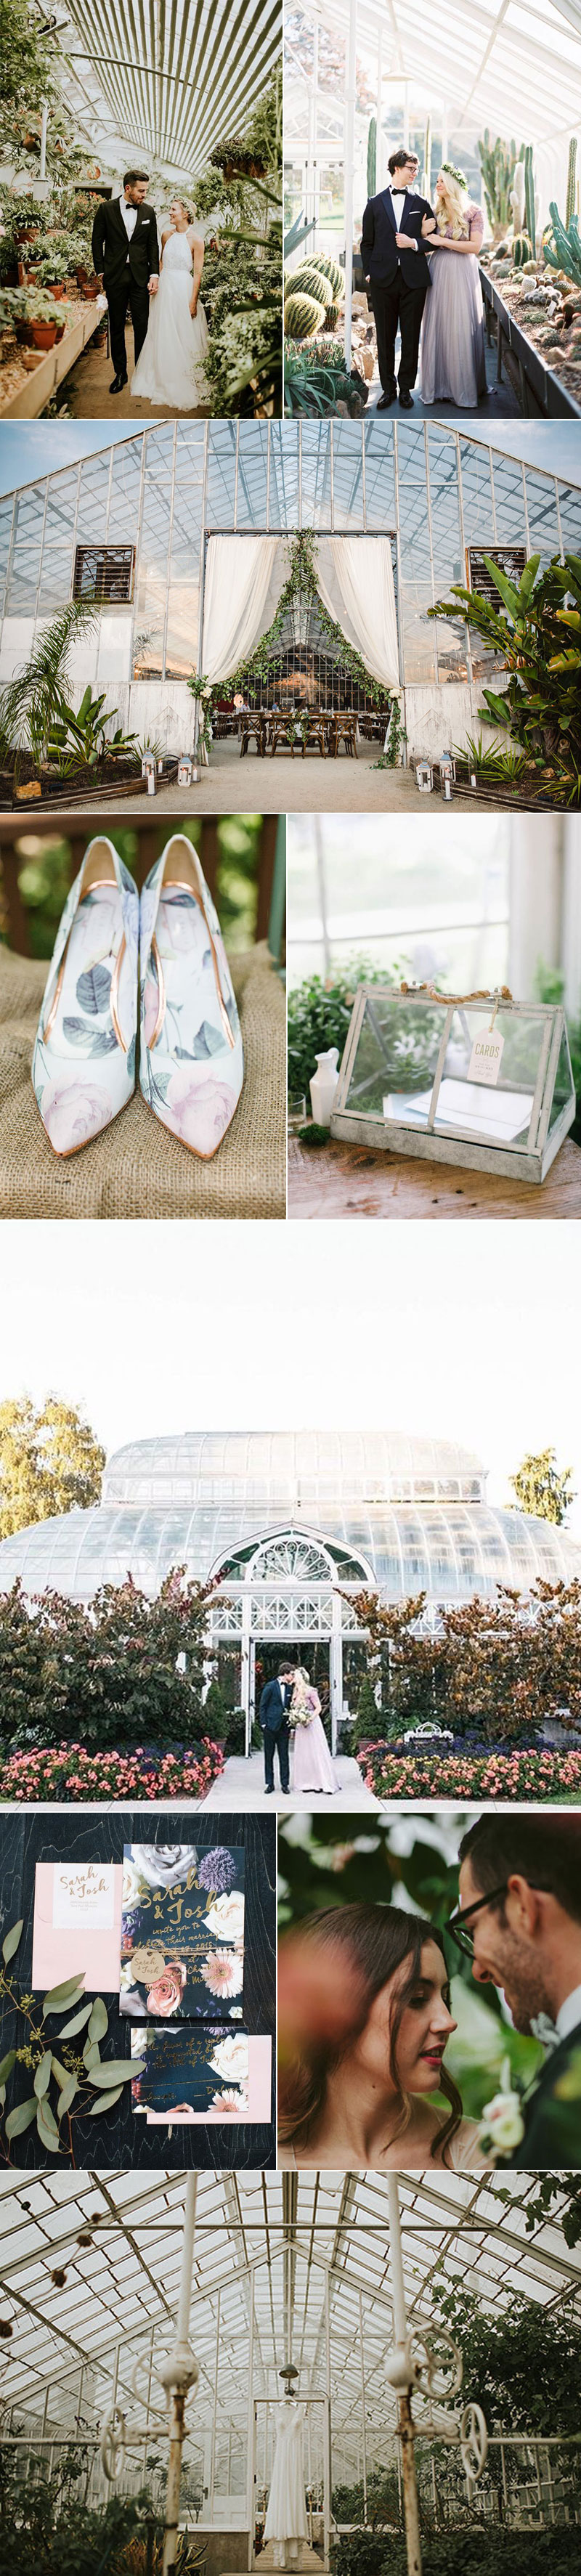 Wedding Ideas For Greenhouse Wedding